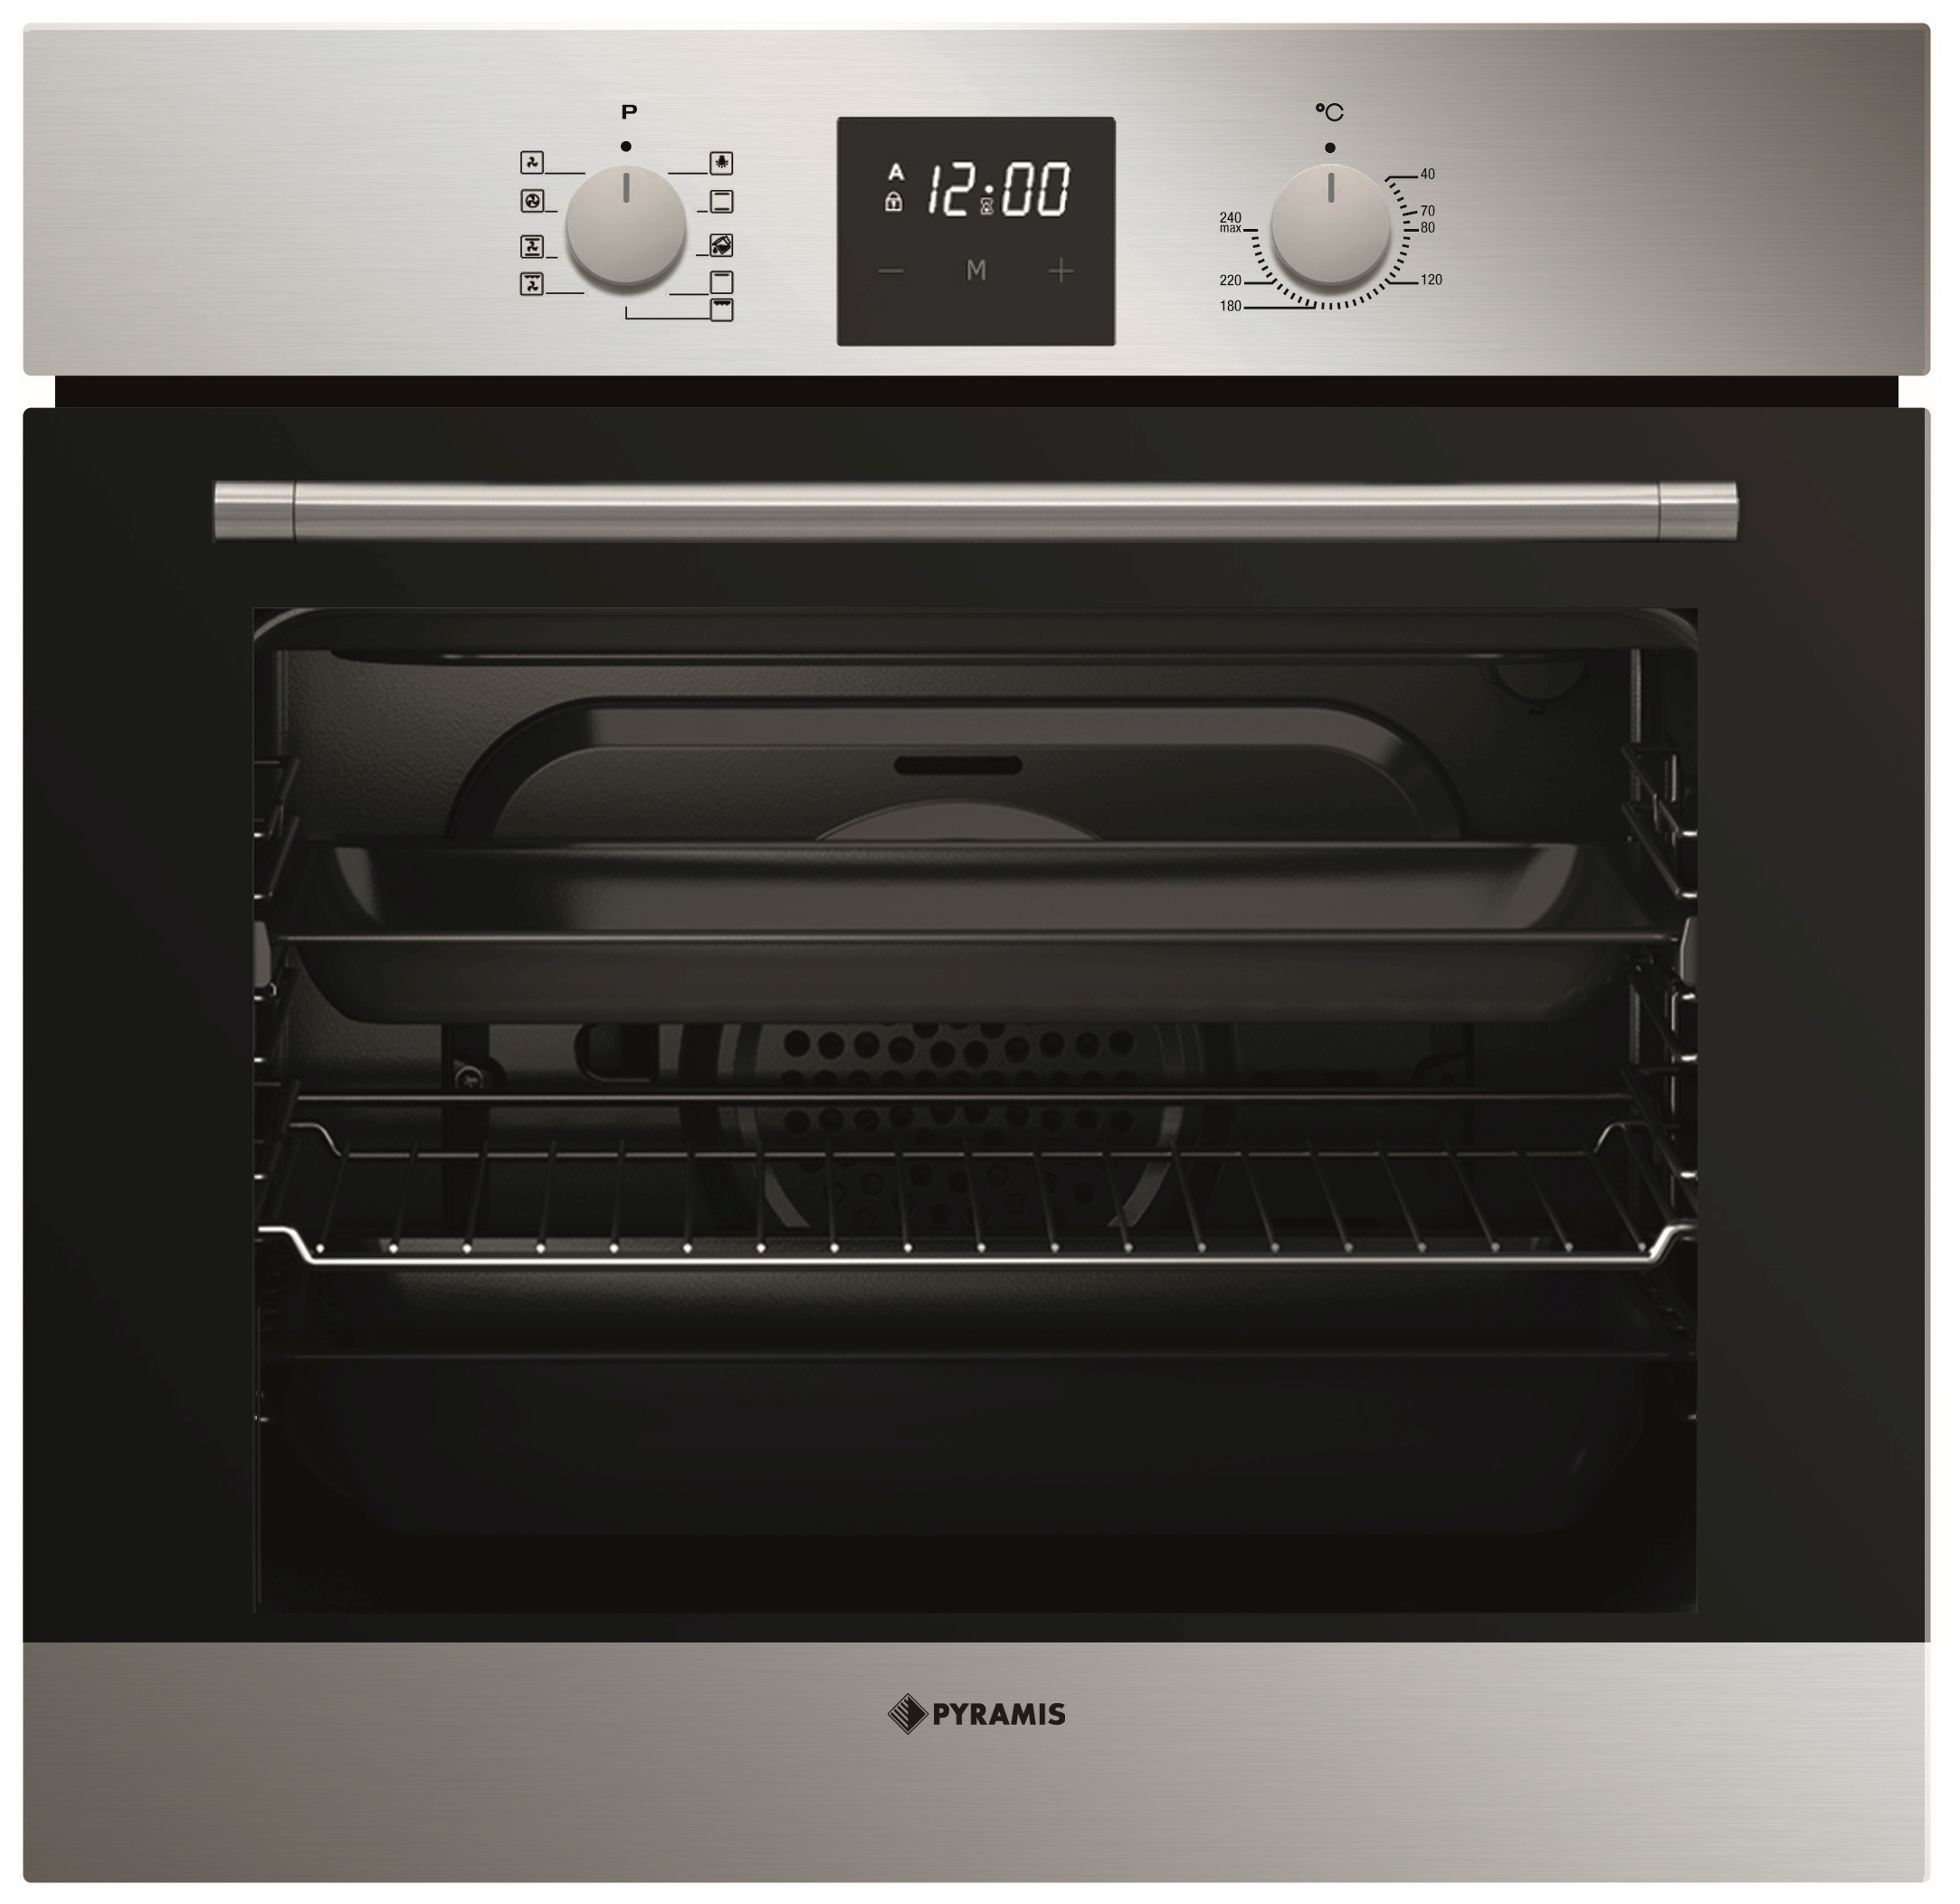 Backofen 60In 1250 inox Backofen - 34003701